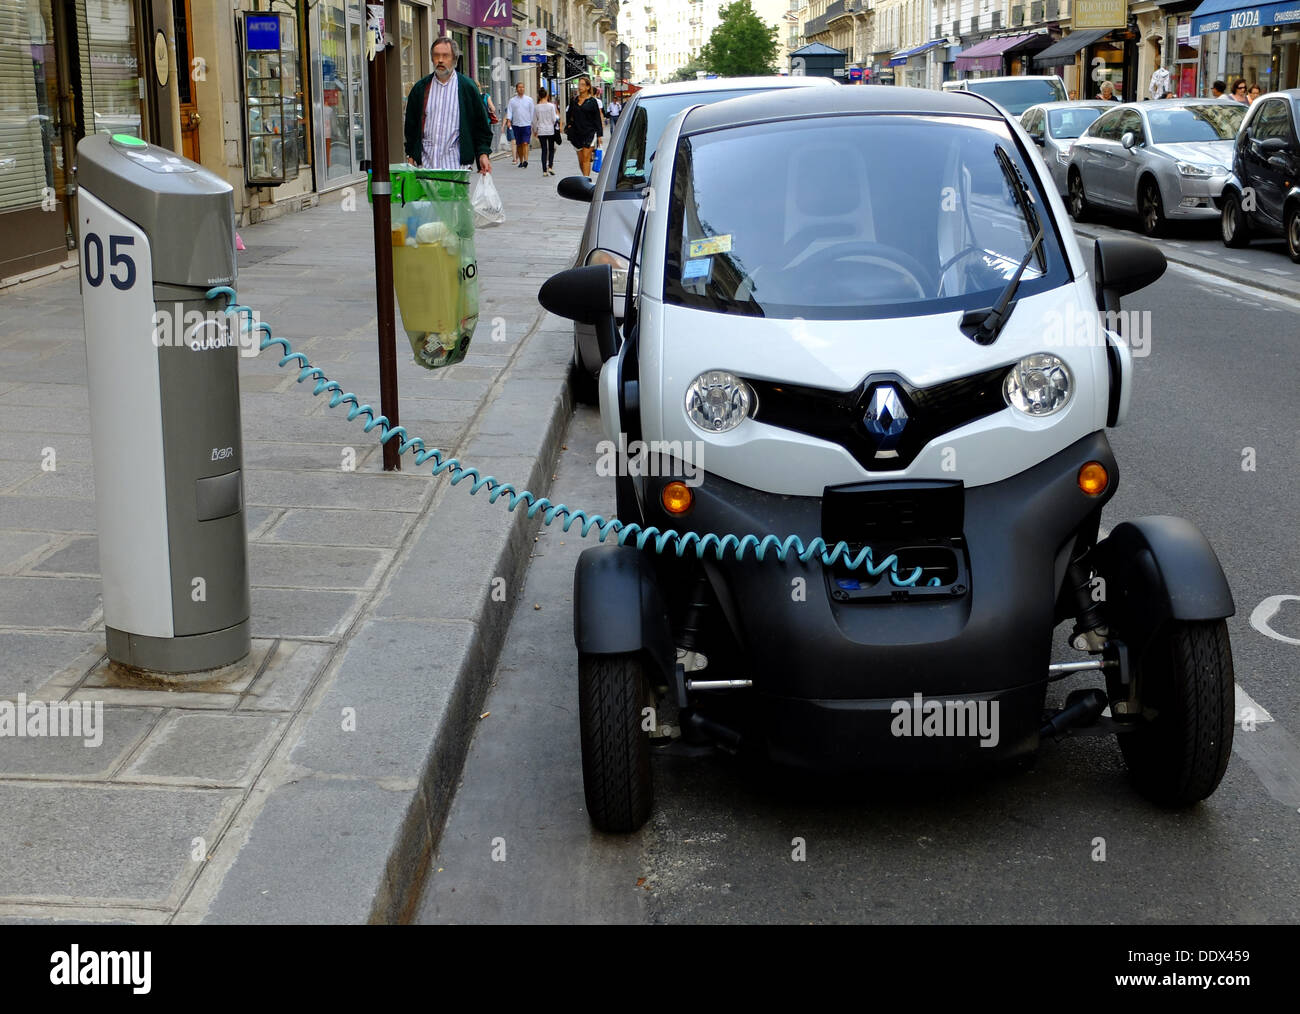 https://c8.alamy.com/comp/DDX459/renault-twizy-at-load-terminal-electric-car-zero-emission-paris-france-DDX459.jpg